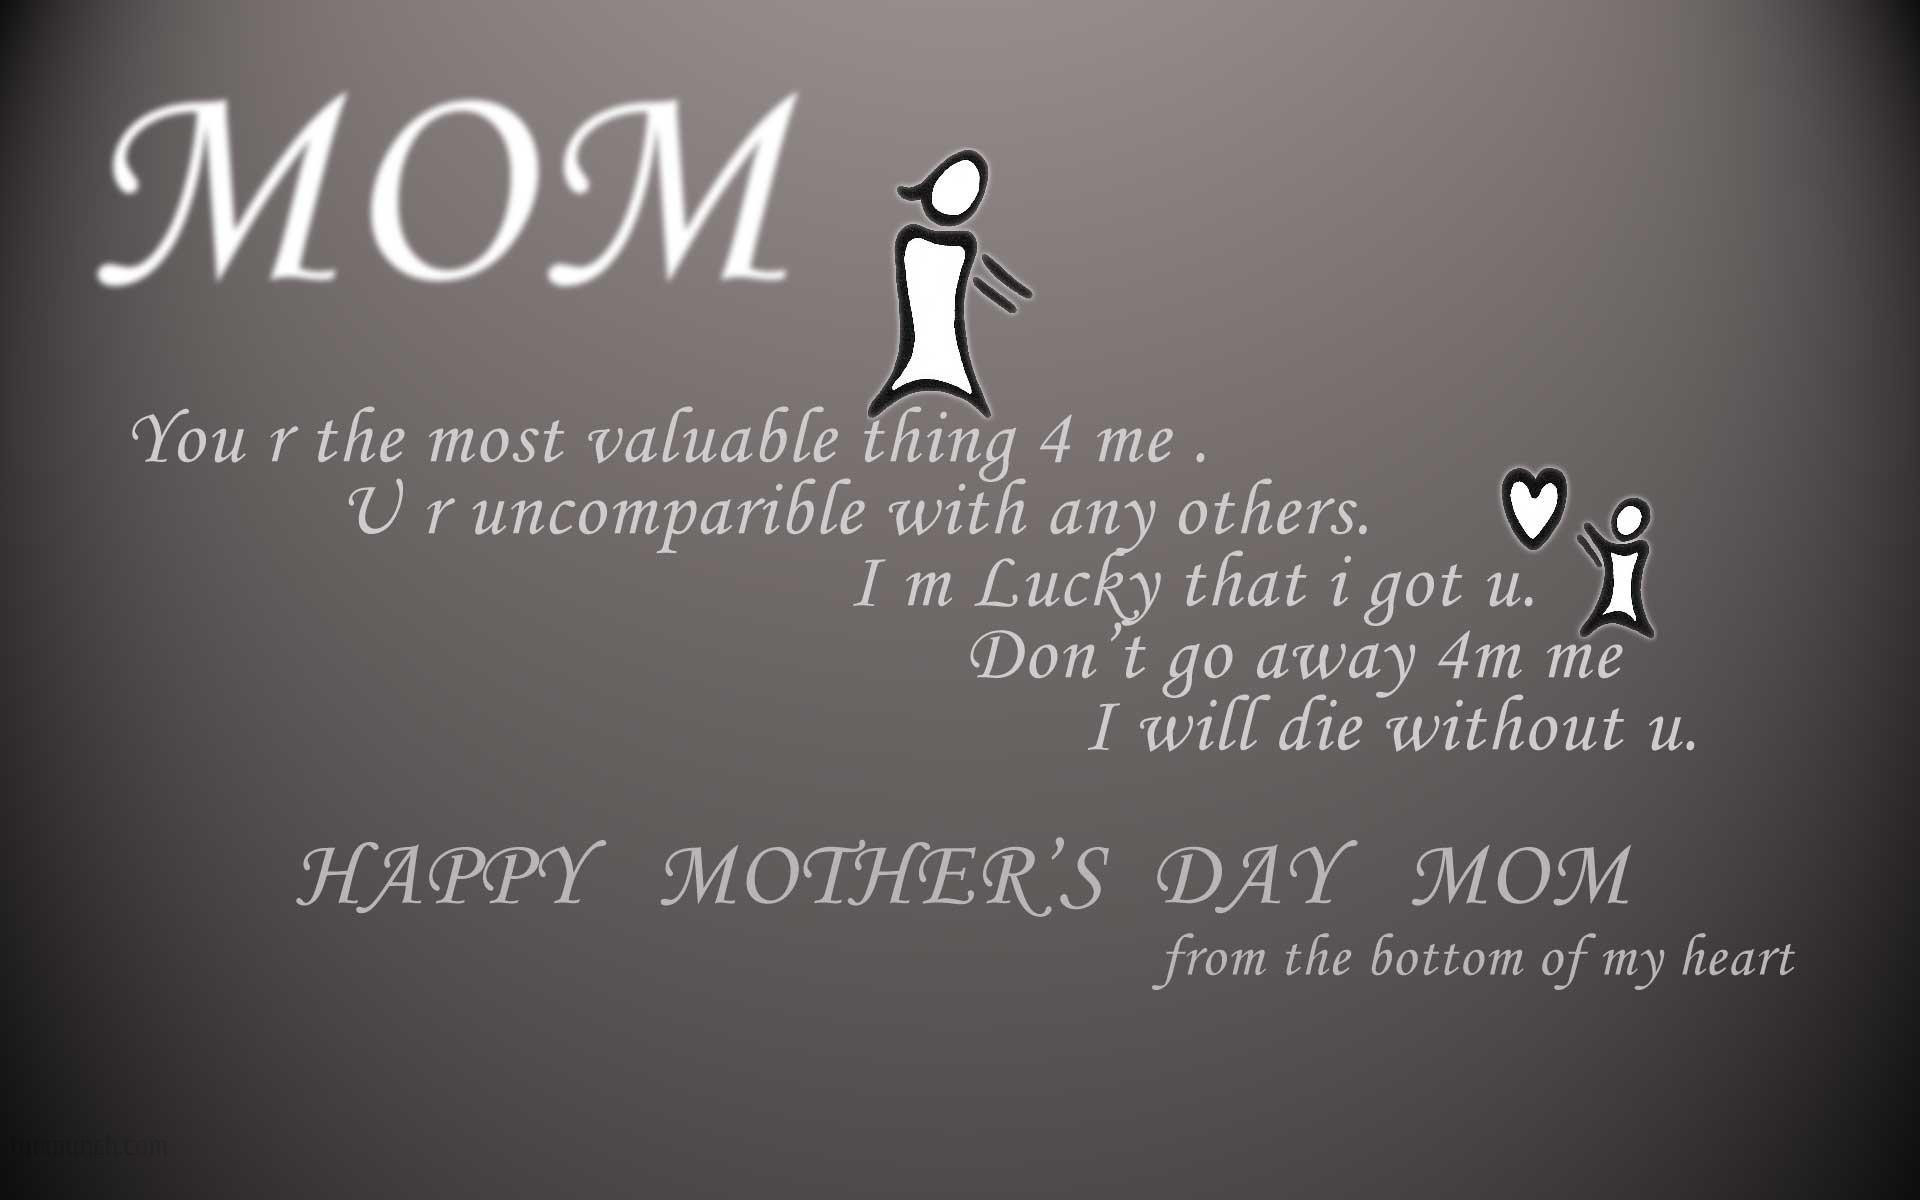 Dead Mother Day Quotes  Mothers Day Sayings Wallpaper High Definition High